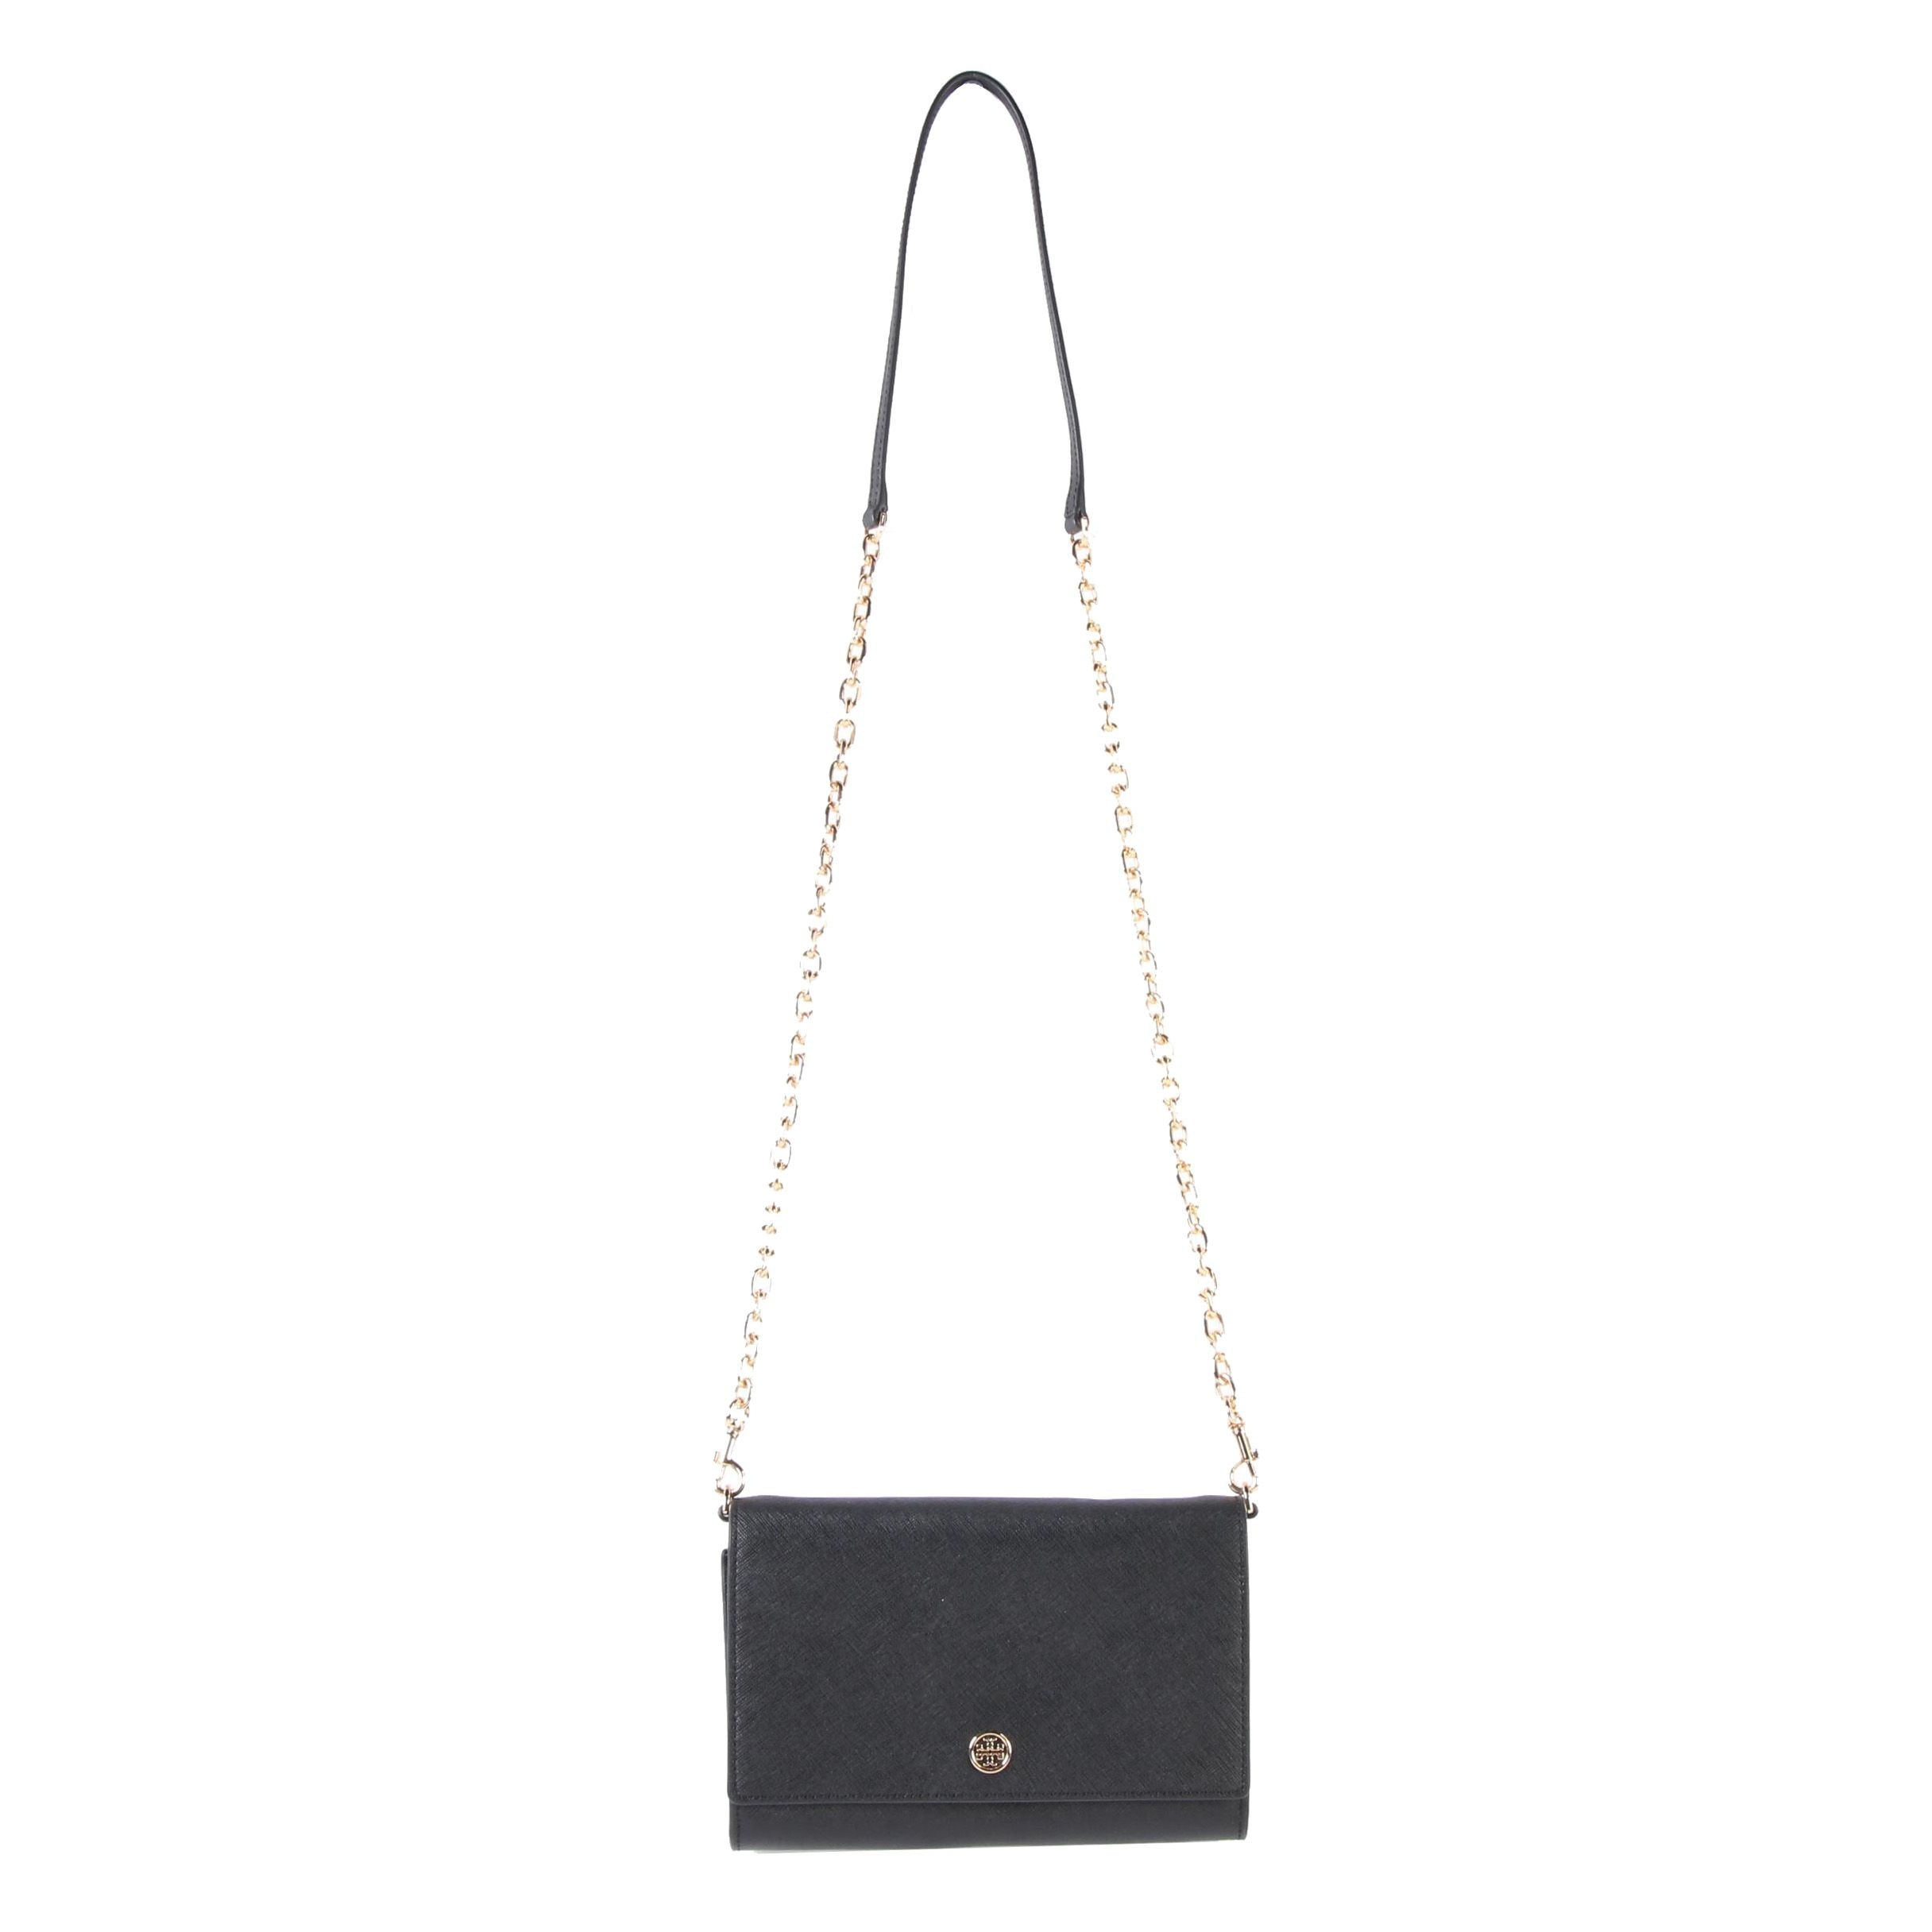 Tory Burch Robinson Chain Wallet Shoulder Bag in Black Saffiano Leather